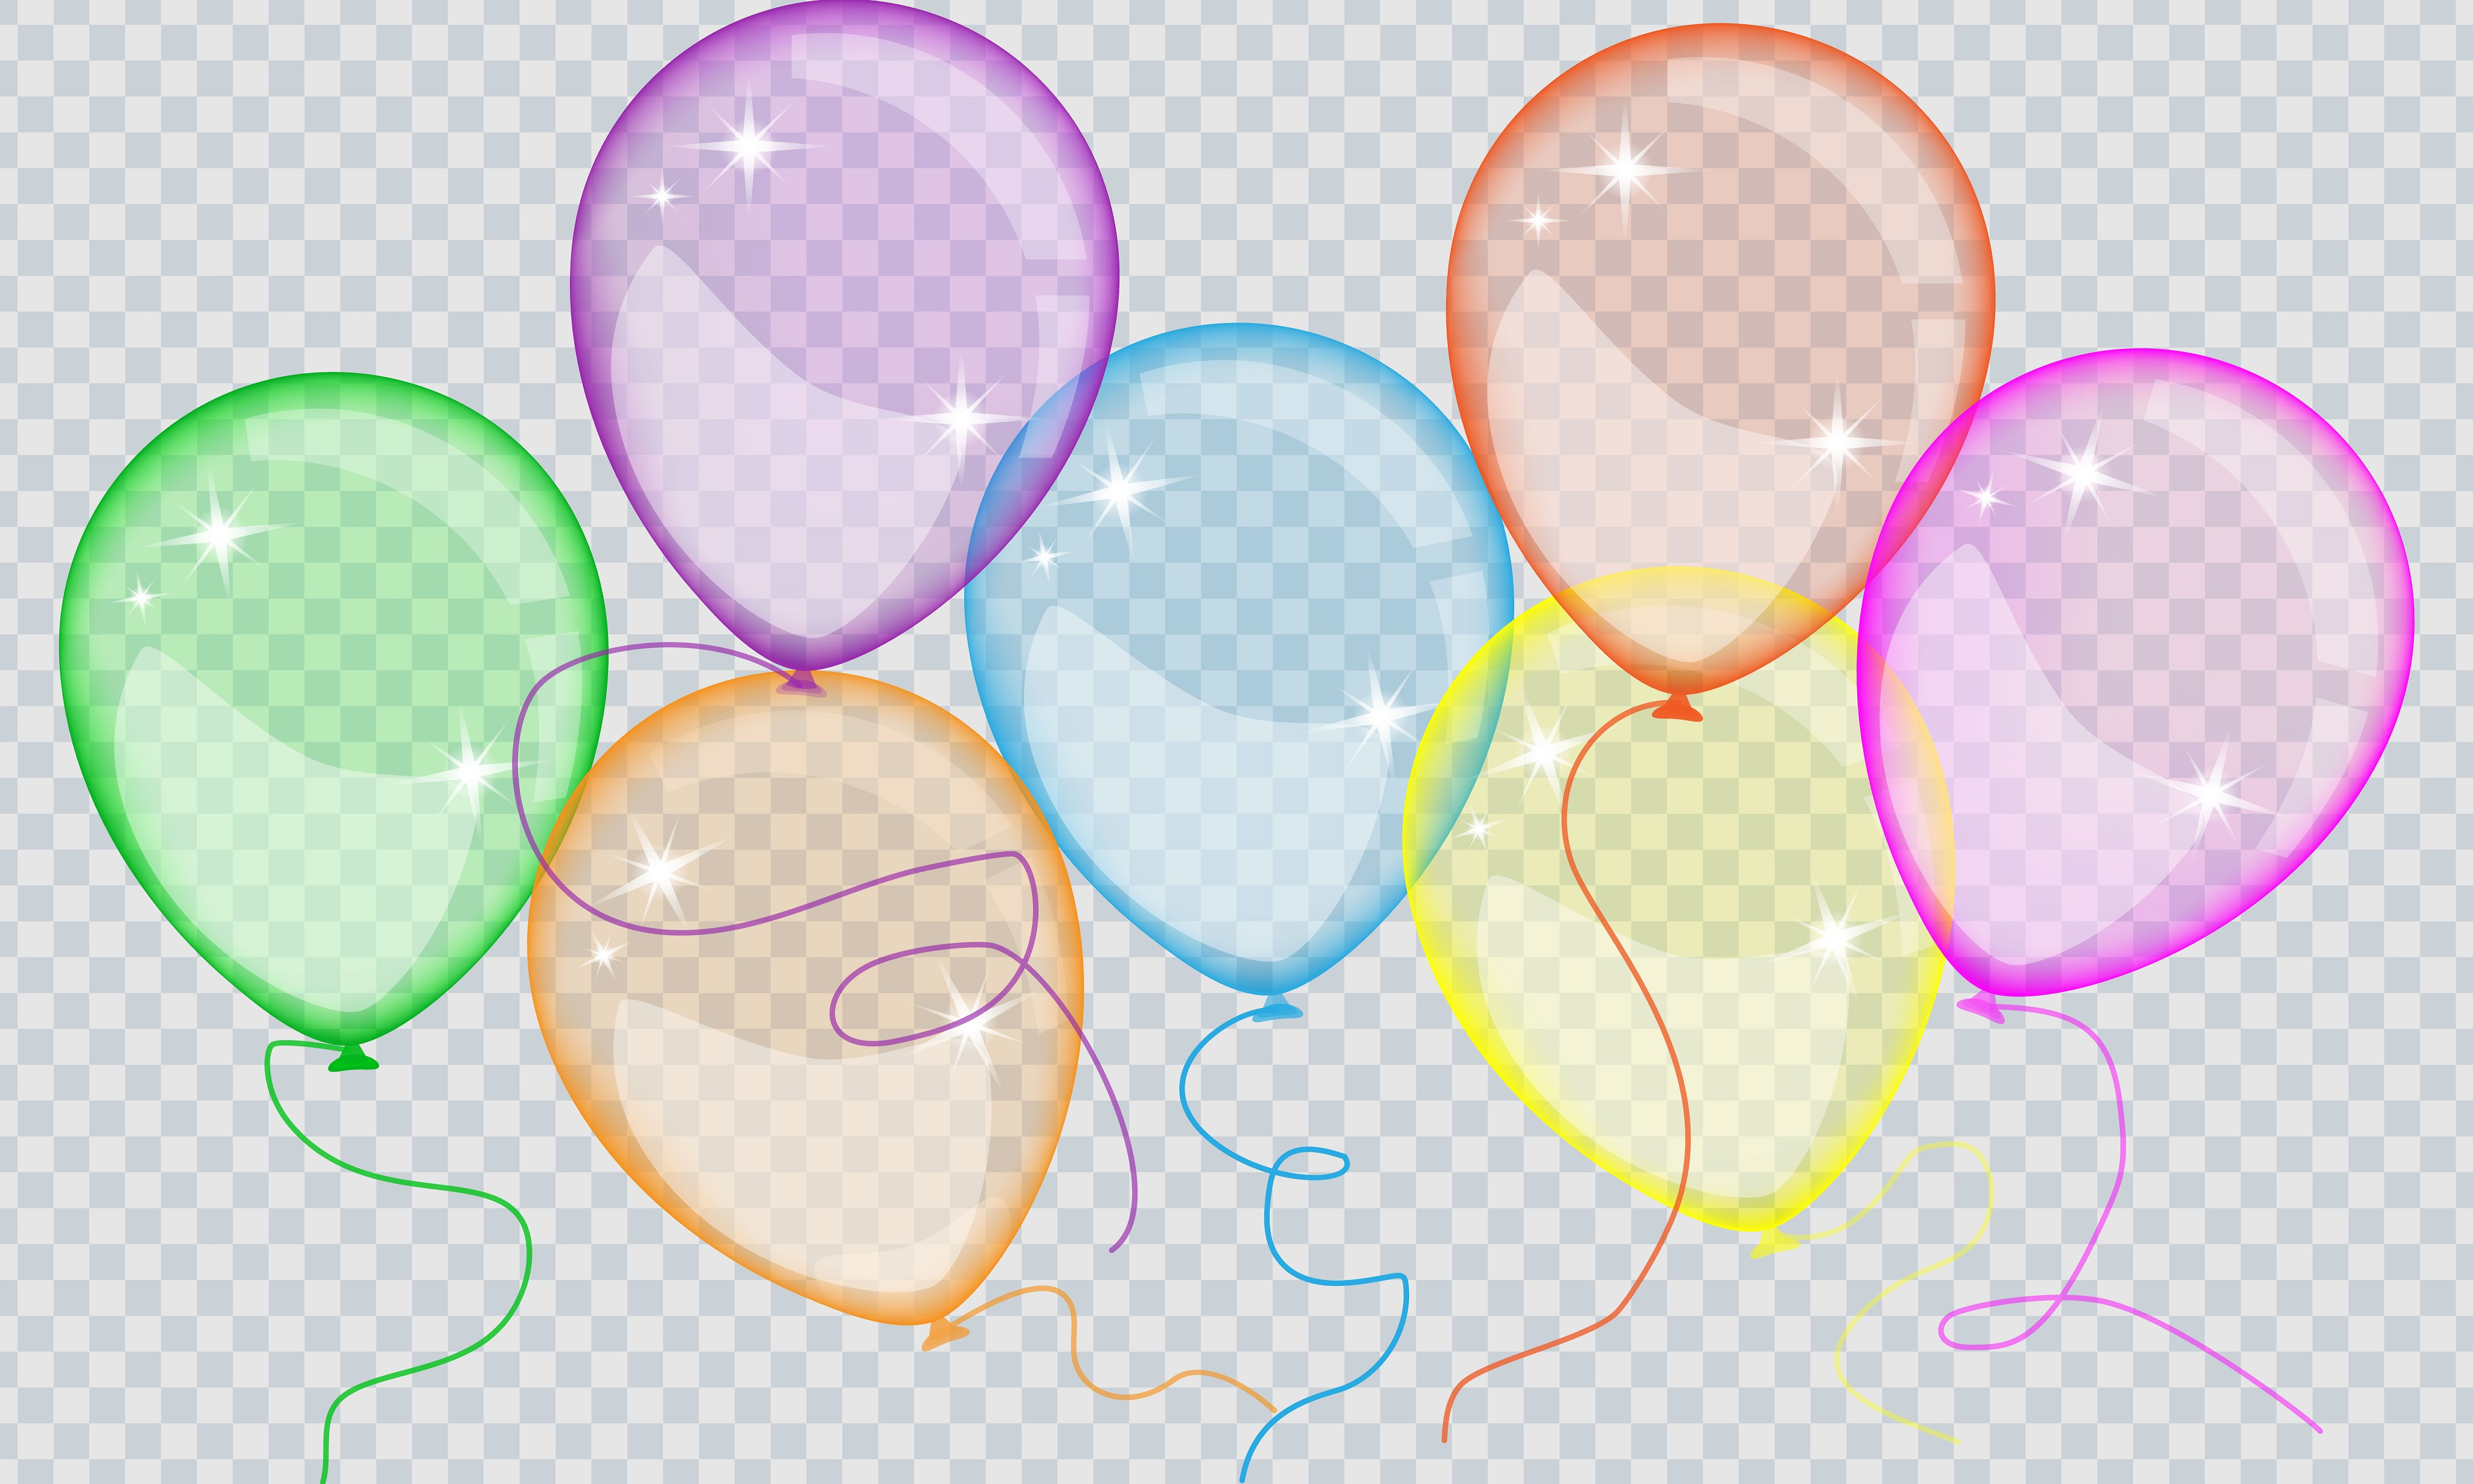 Balloons Transparent Background Free Vector Download